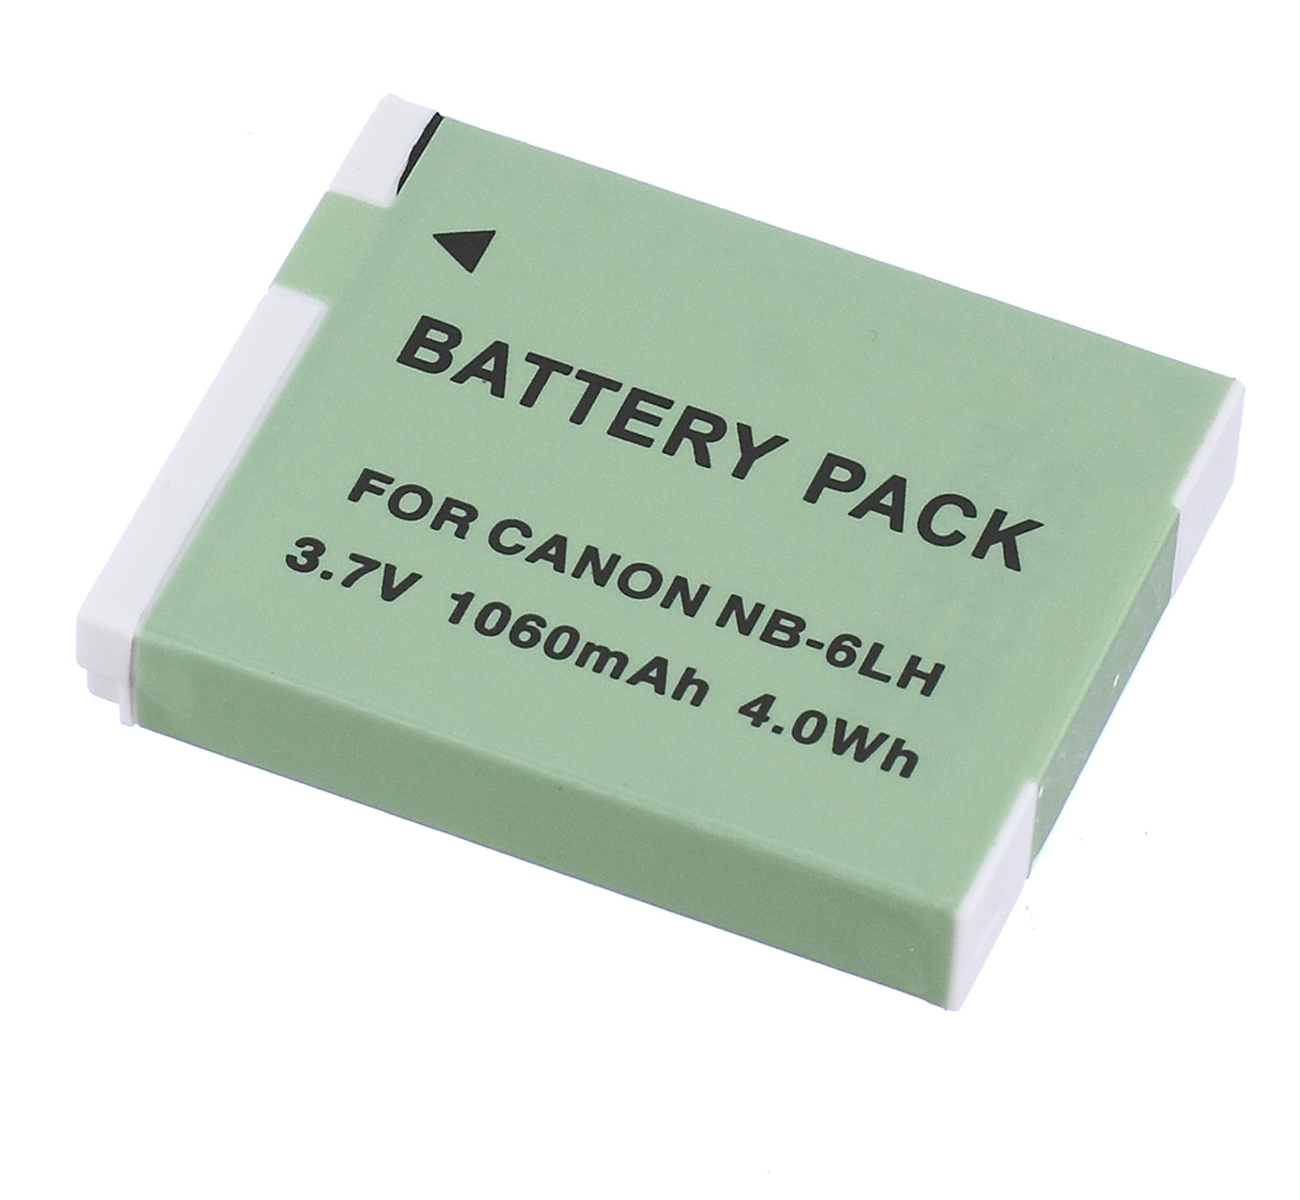 Battery Pack for <font><b>Canon</b></font> PowerShot SX170 IS, SX240, SX260, SX270, SX280 <font><b>HS</b></font>, SX500 IS, <font><b>SX510</b></font>, SX520, SX530, SX540 <font><b>HS</b></font> Digital Camera image